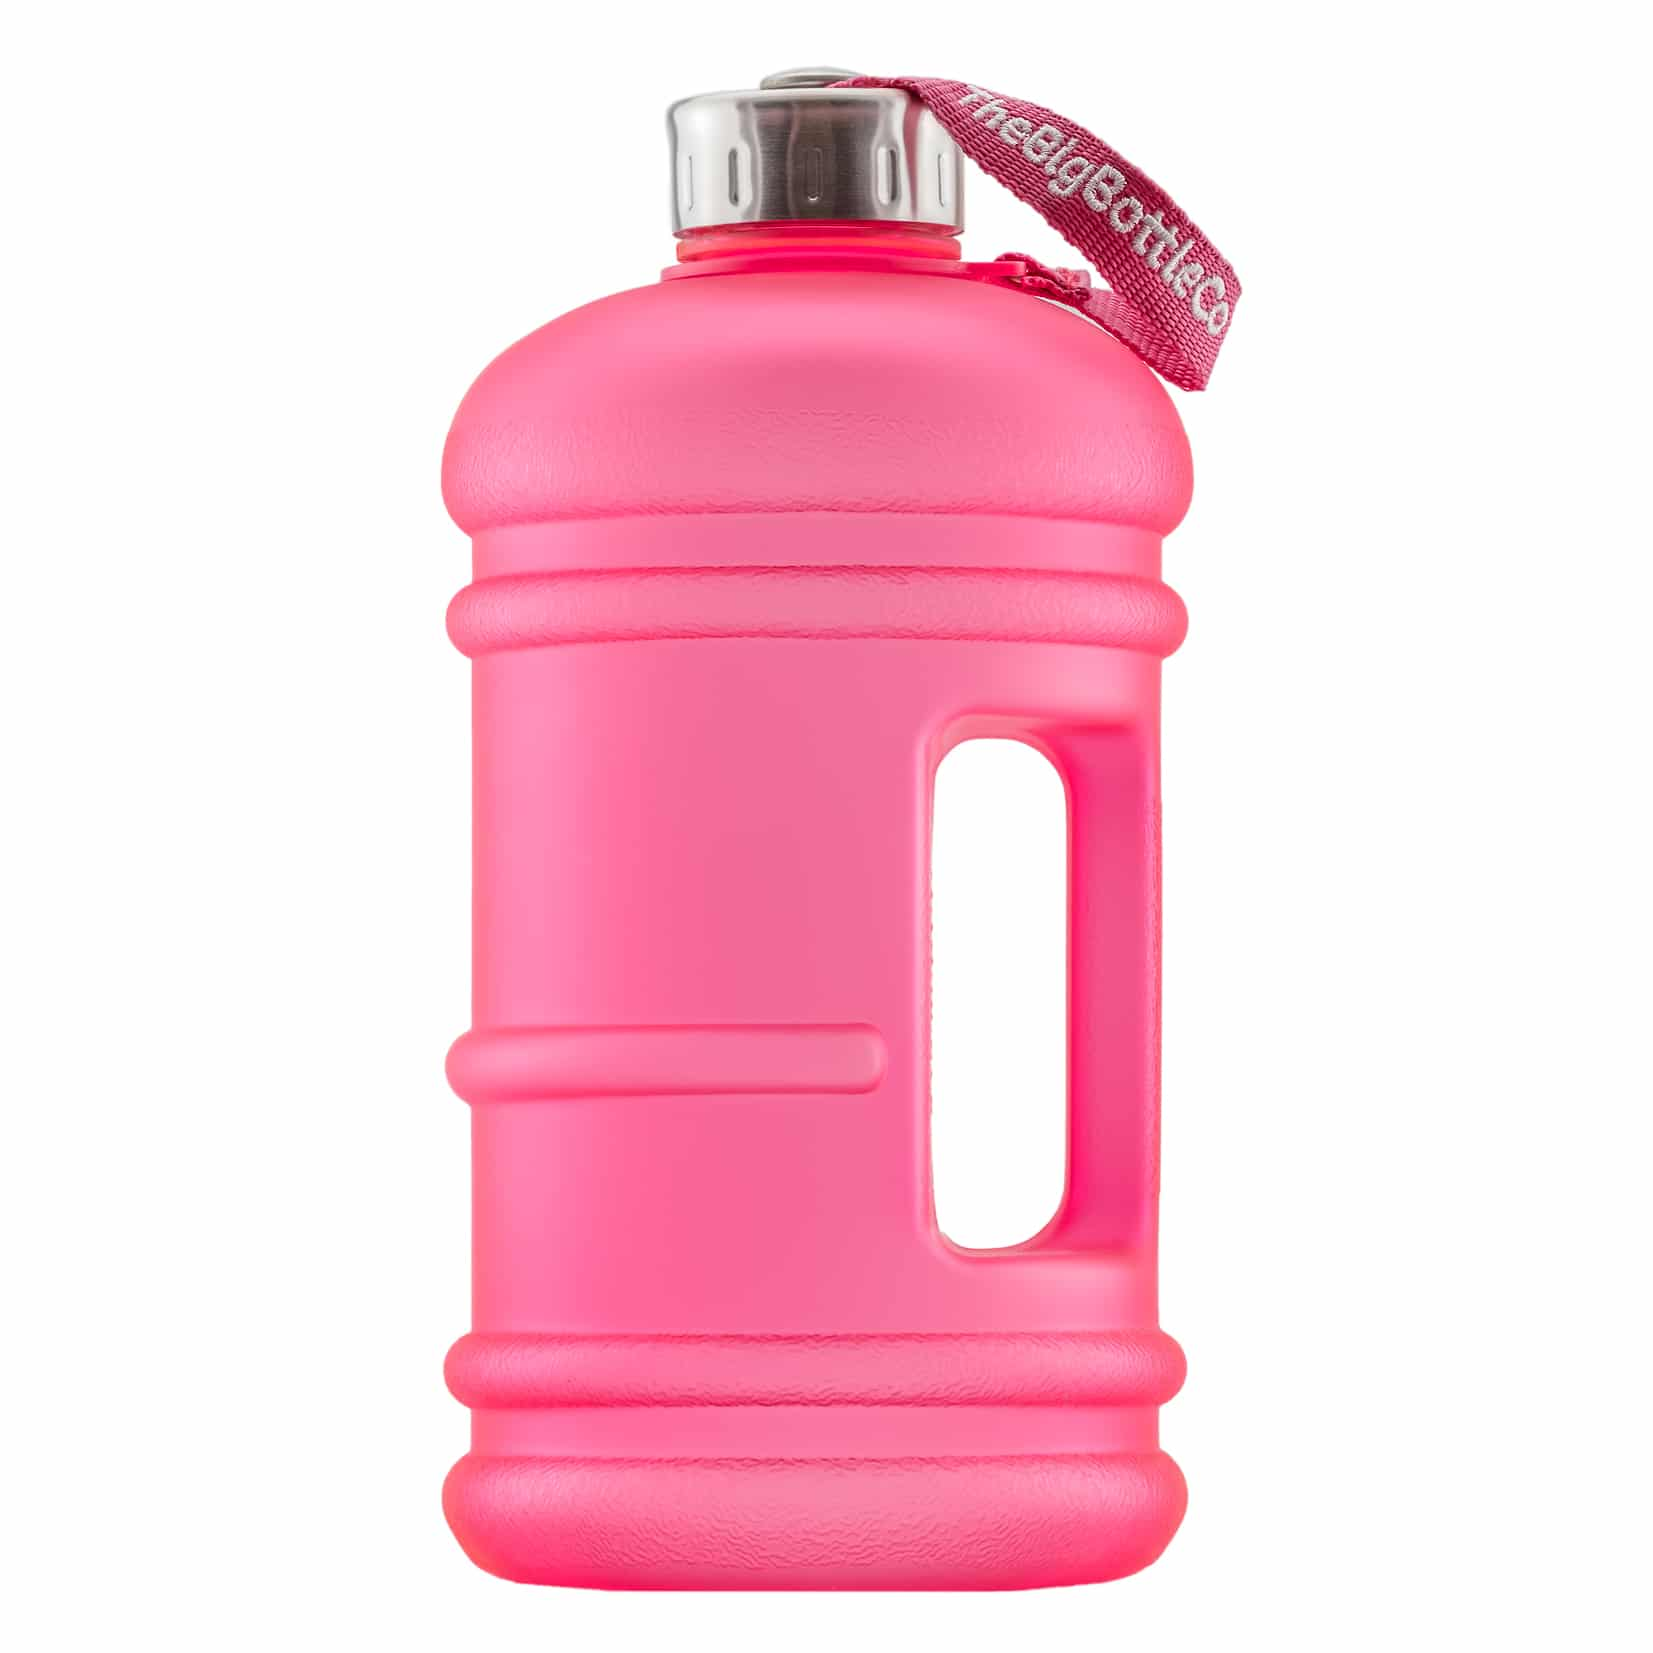 Frosted Pink 2.2L